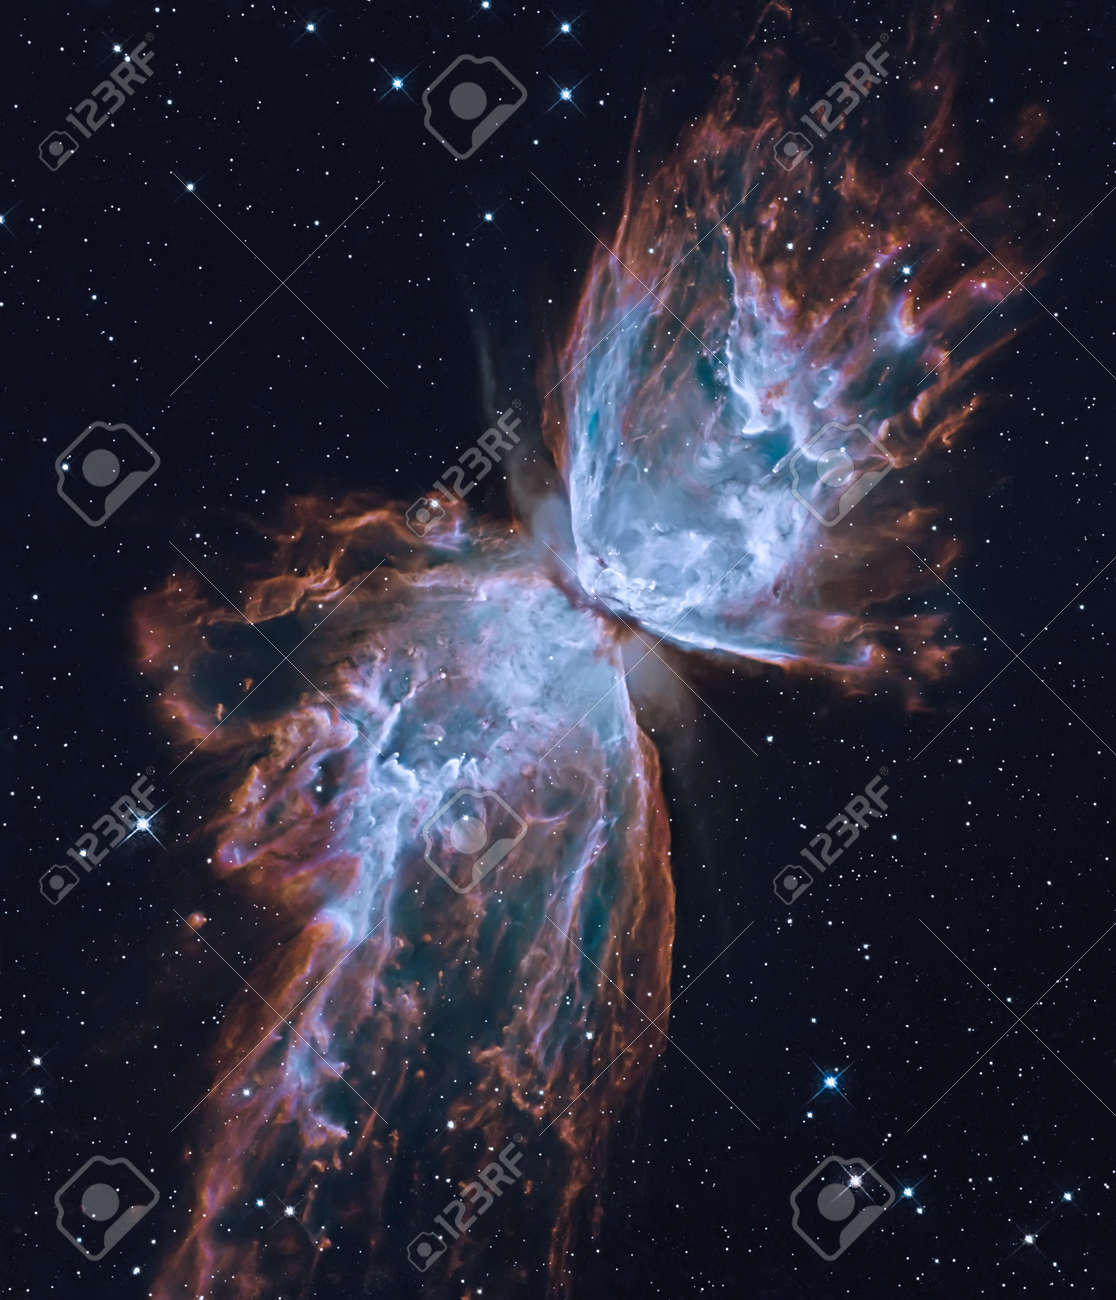 The Butterfly Nebula. Retouched image. - 95890272